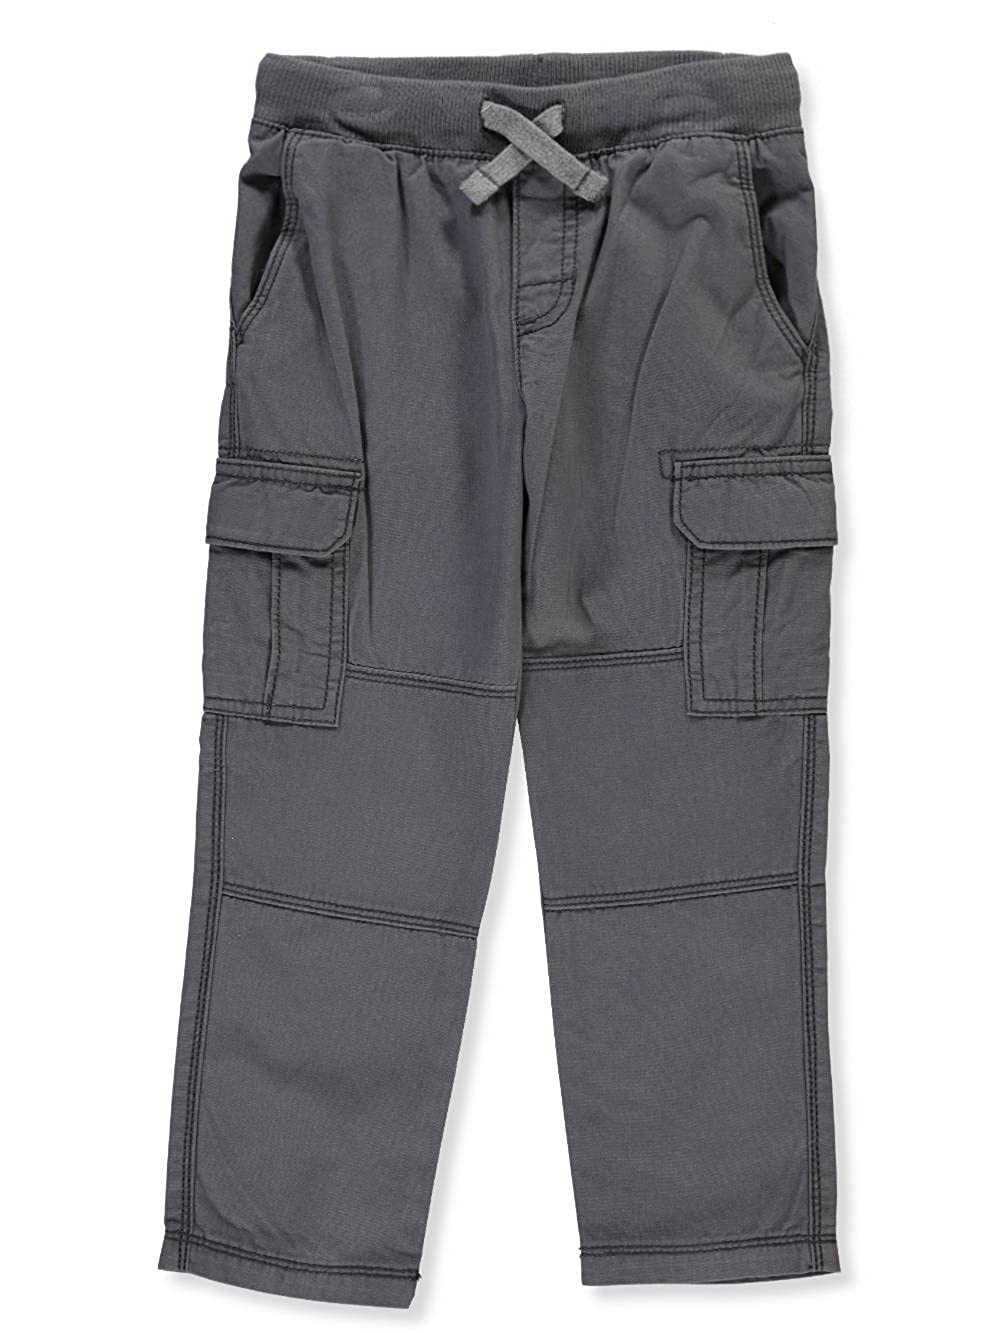 Carter's Boys' Cargo Pants Carter's